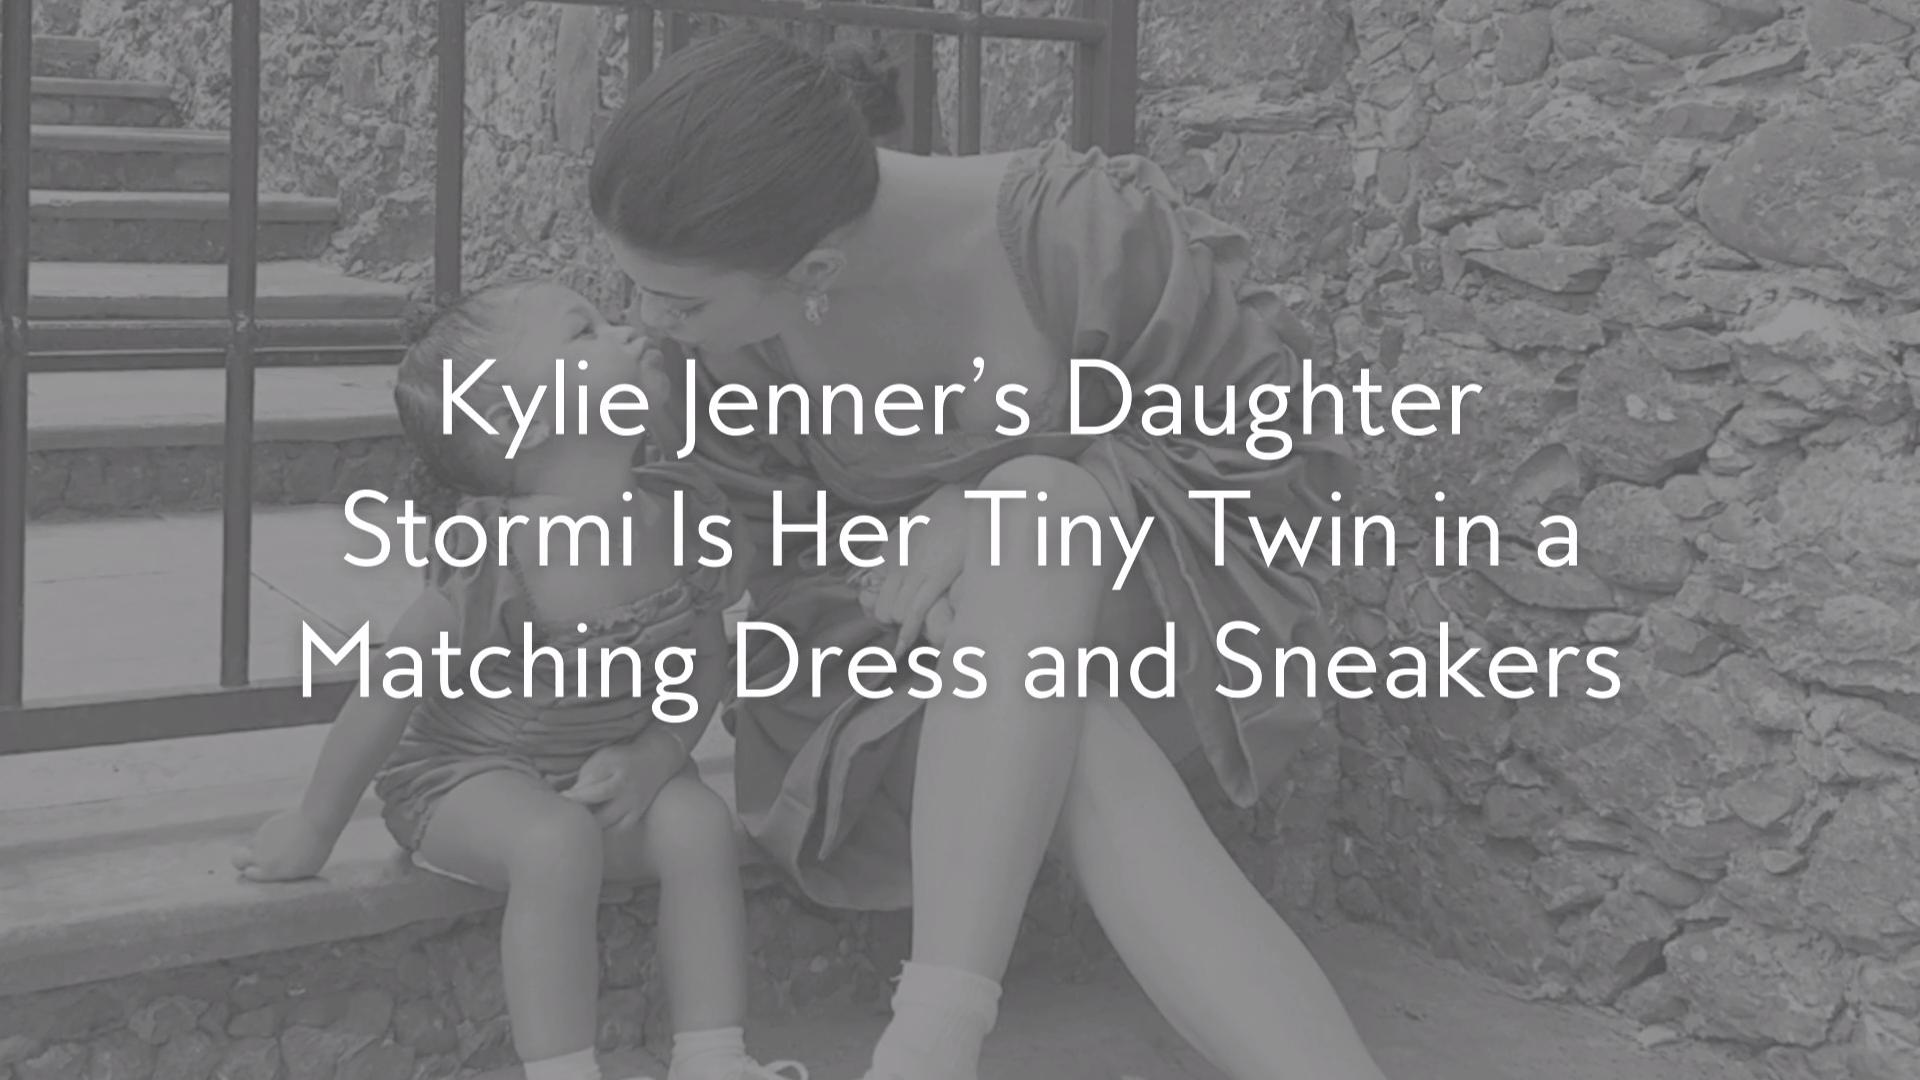 Kylie Jenner's Daughter Stormi Is Her Tiny Twin in a Matching Dress and Sneakers